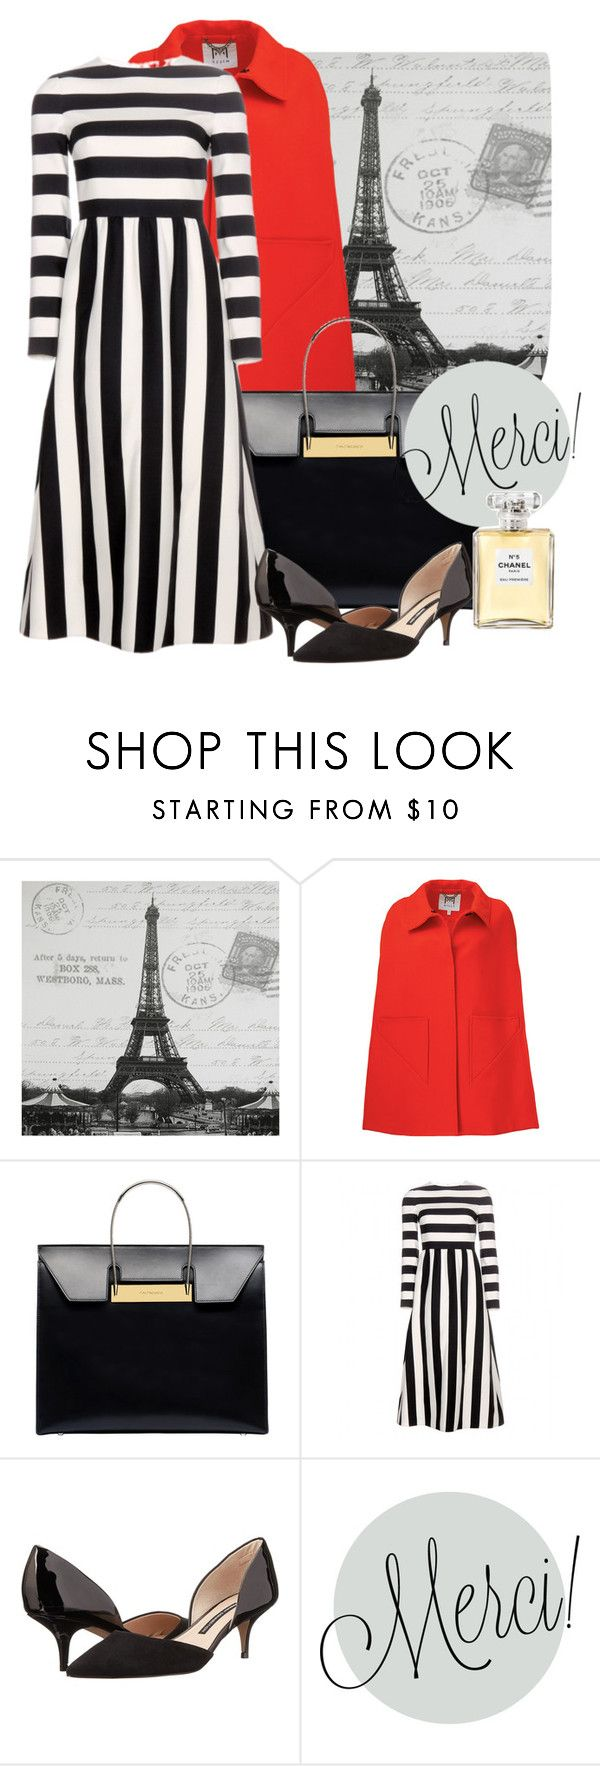 """""""France"""" by mimi-the-stupefying ❤ liked on Polyvore featuring Milly, Balenciaga, Valentino, French Connection and Chanel"""